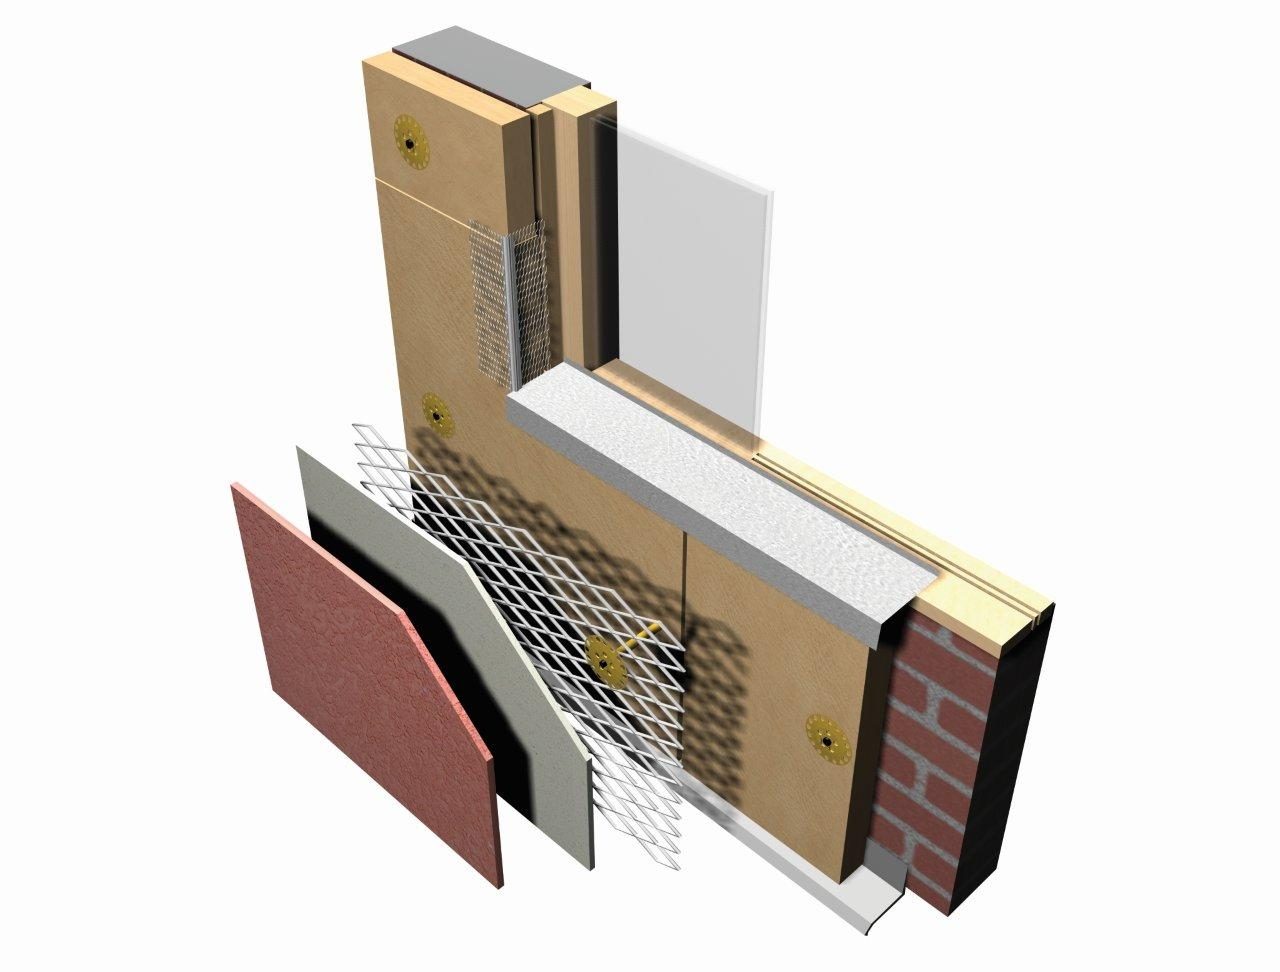 Product Information For External Wall Insulation By Enewall